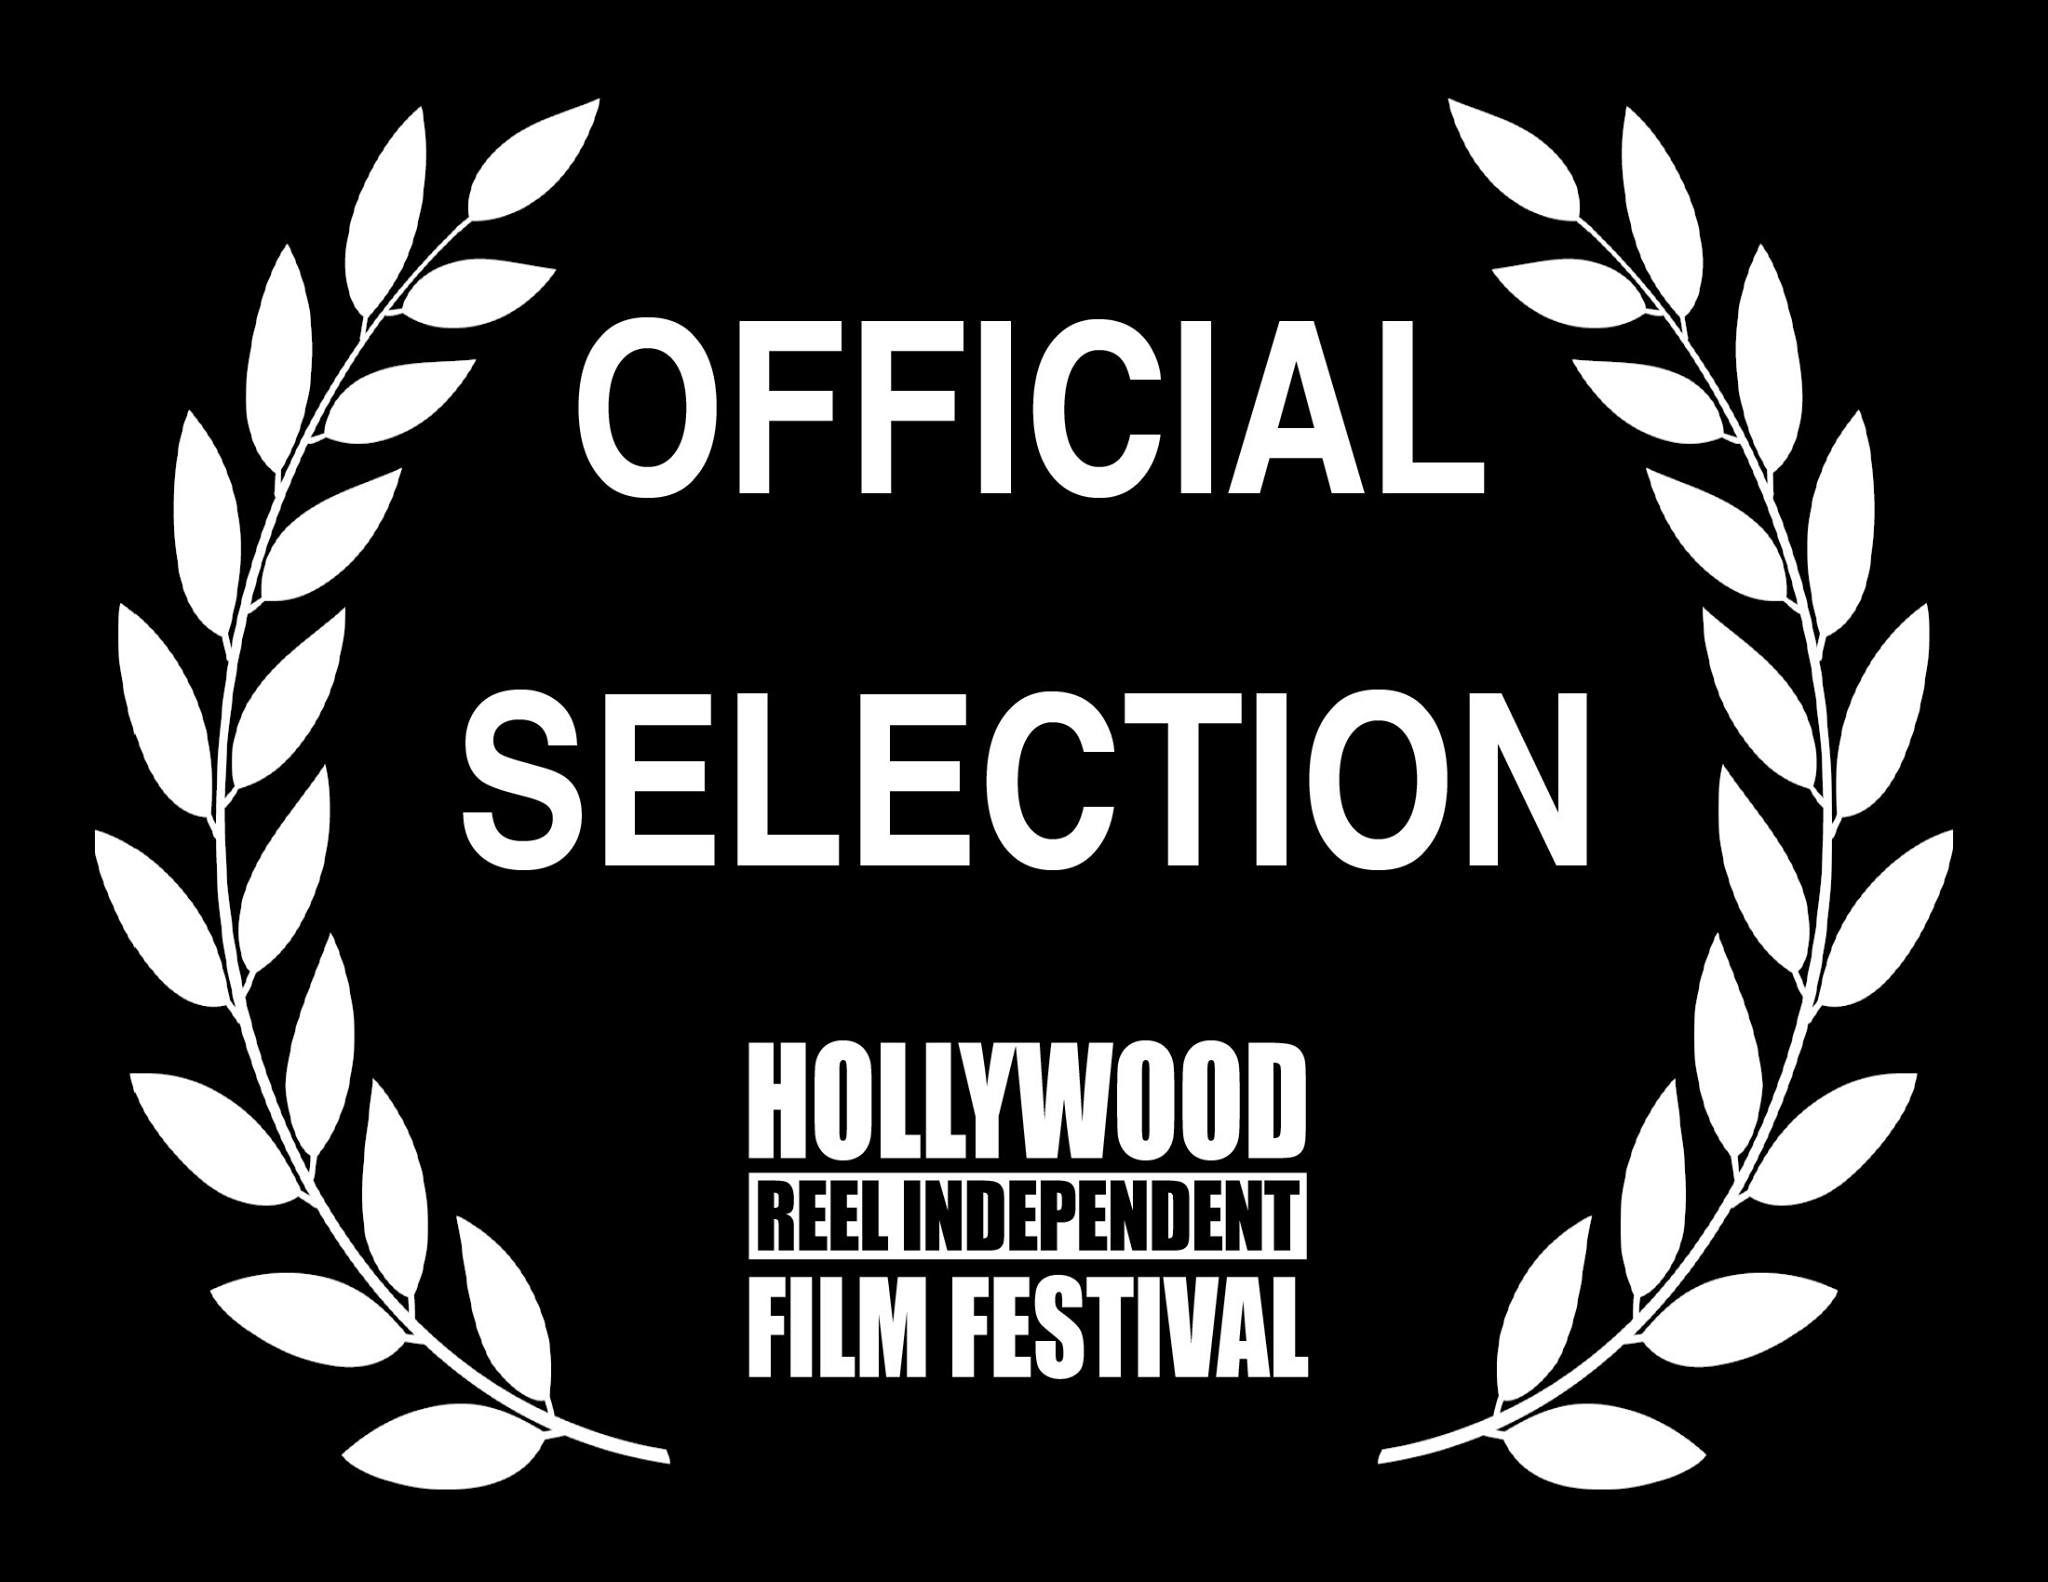 OFFICIAL SELECTION - HOLLYWOOD REEL INDEPENDENT FILM FESTIVAL